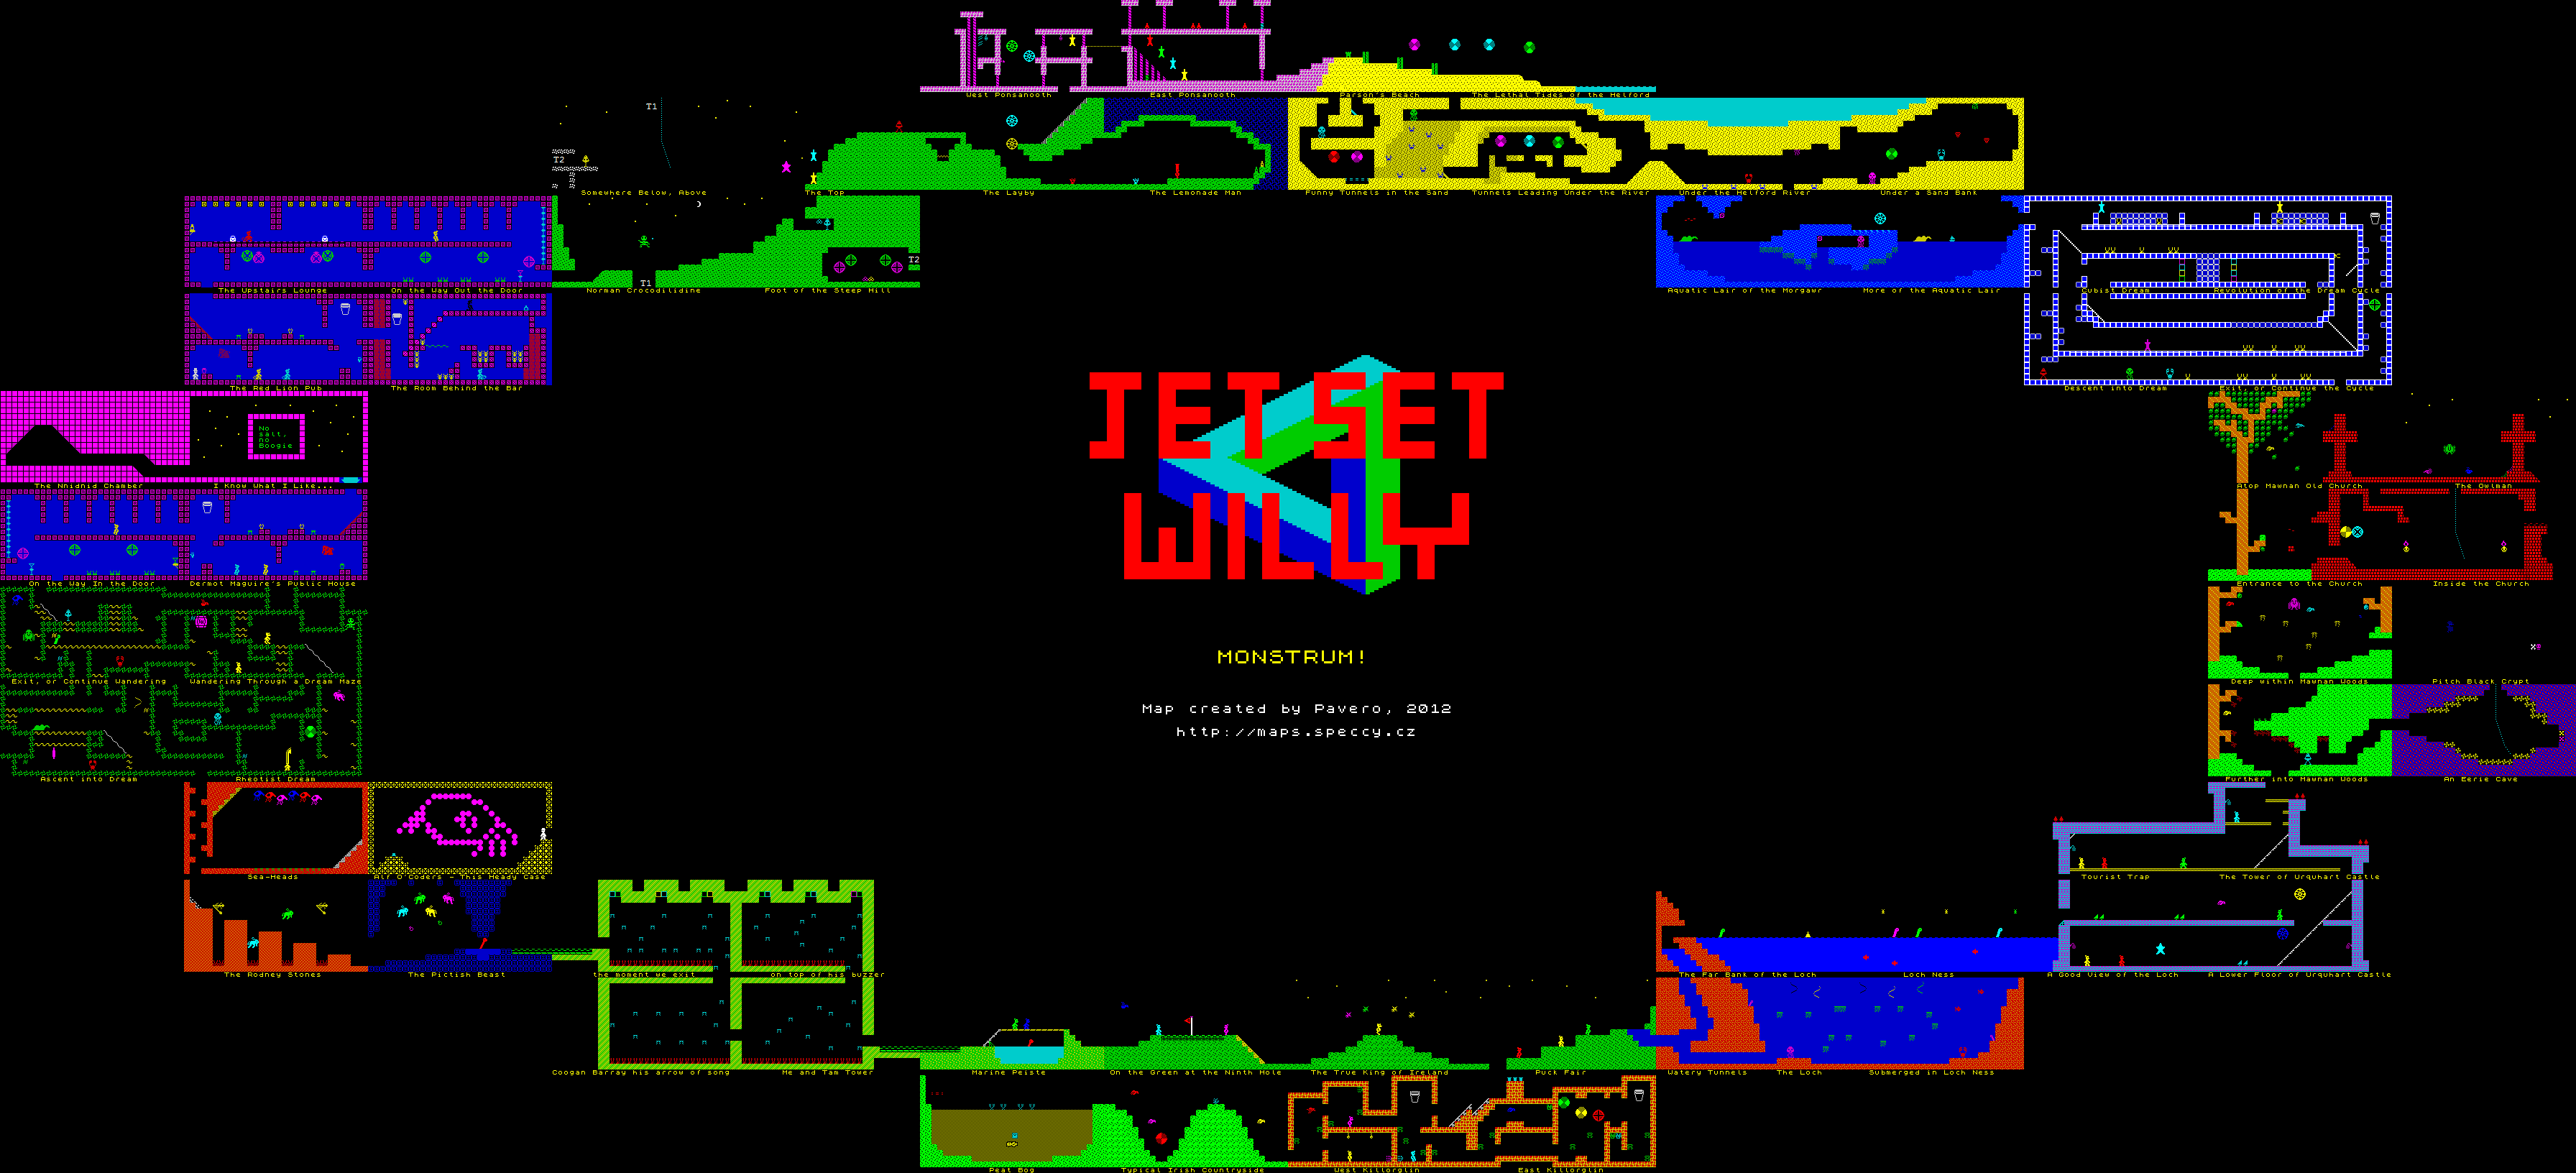 Jet Set Willy - Monstrum! - The Map